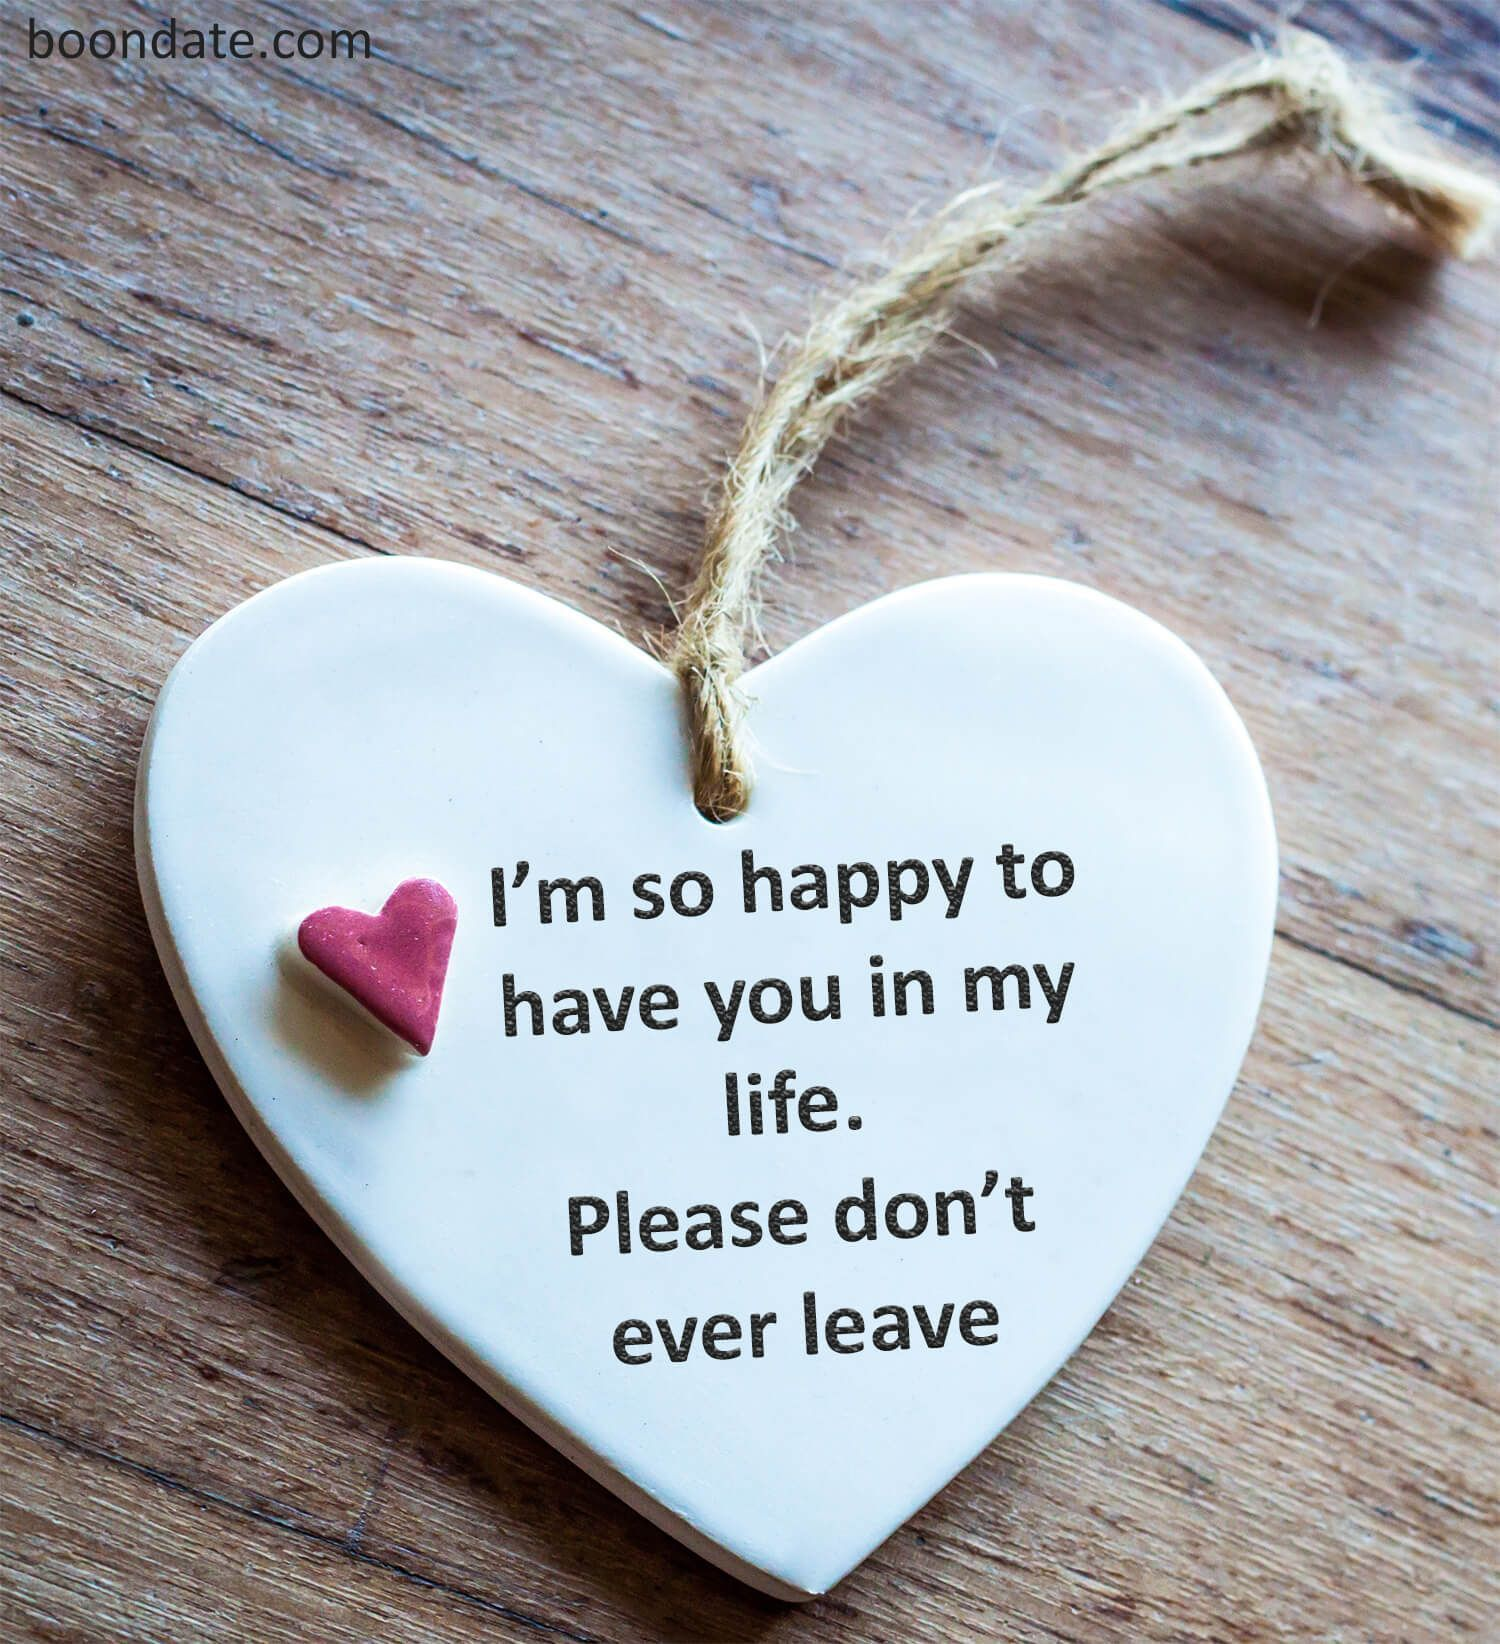 I'm so happy to have you in my life » Love Tips on Boondate